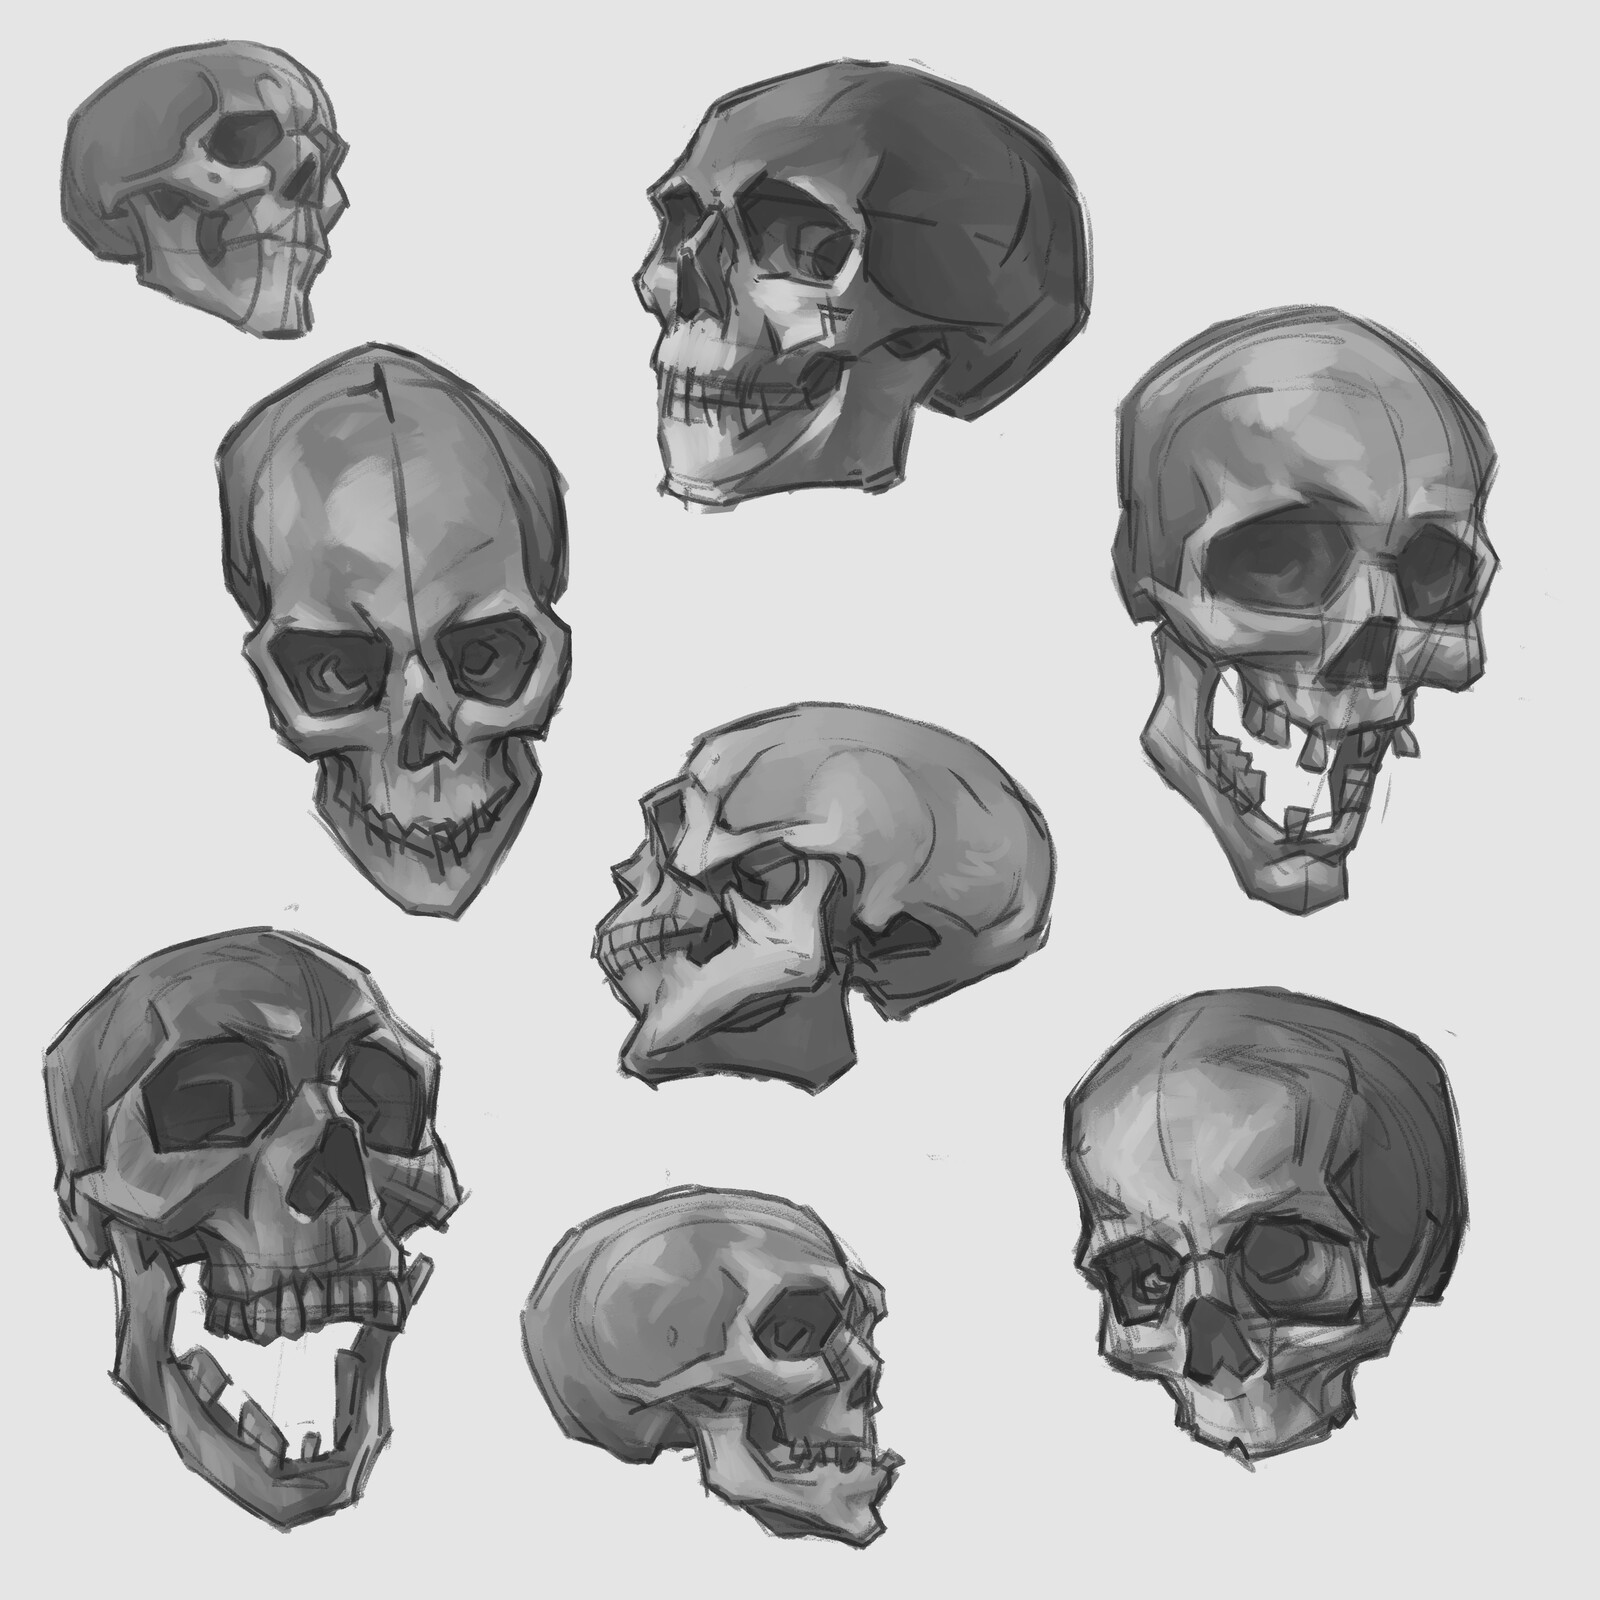 Skull Sketches (Gumroad Product)